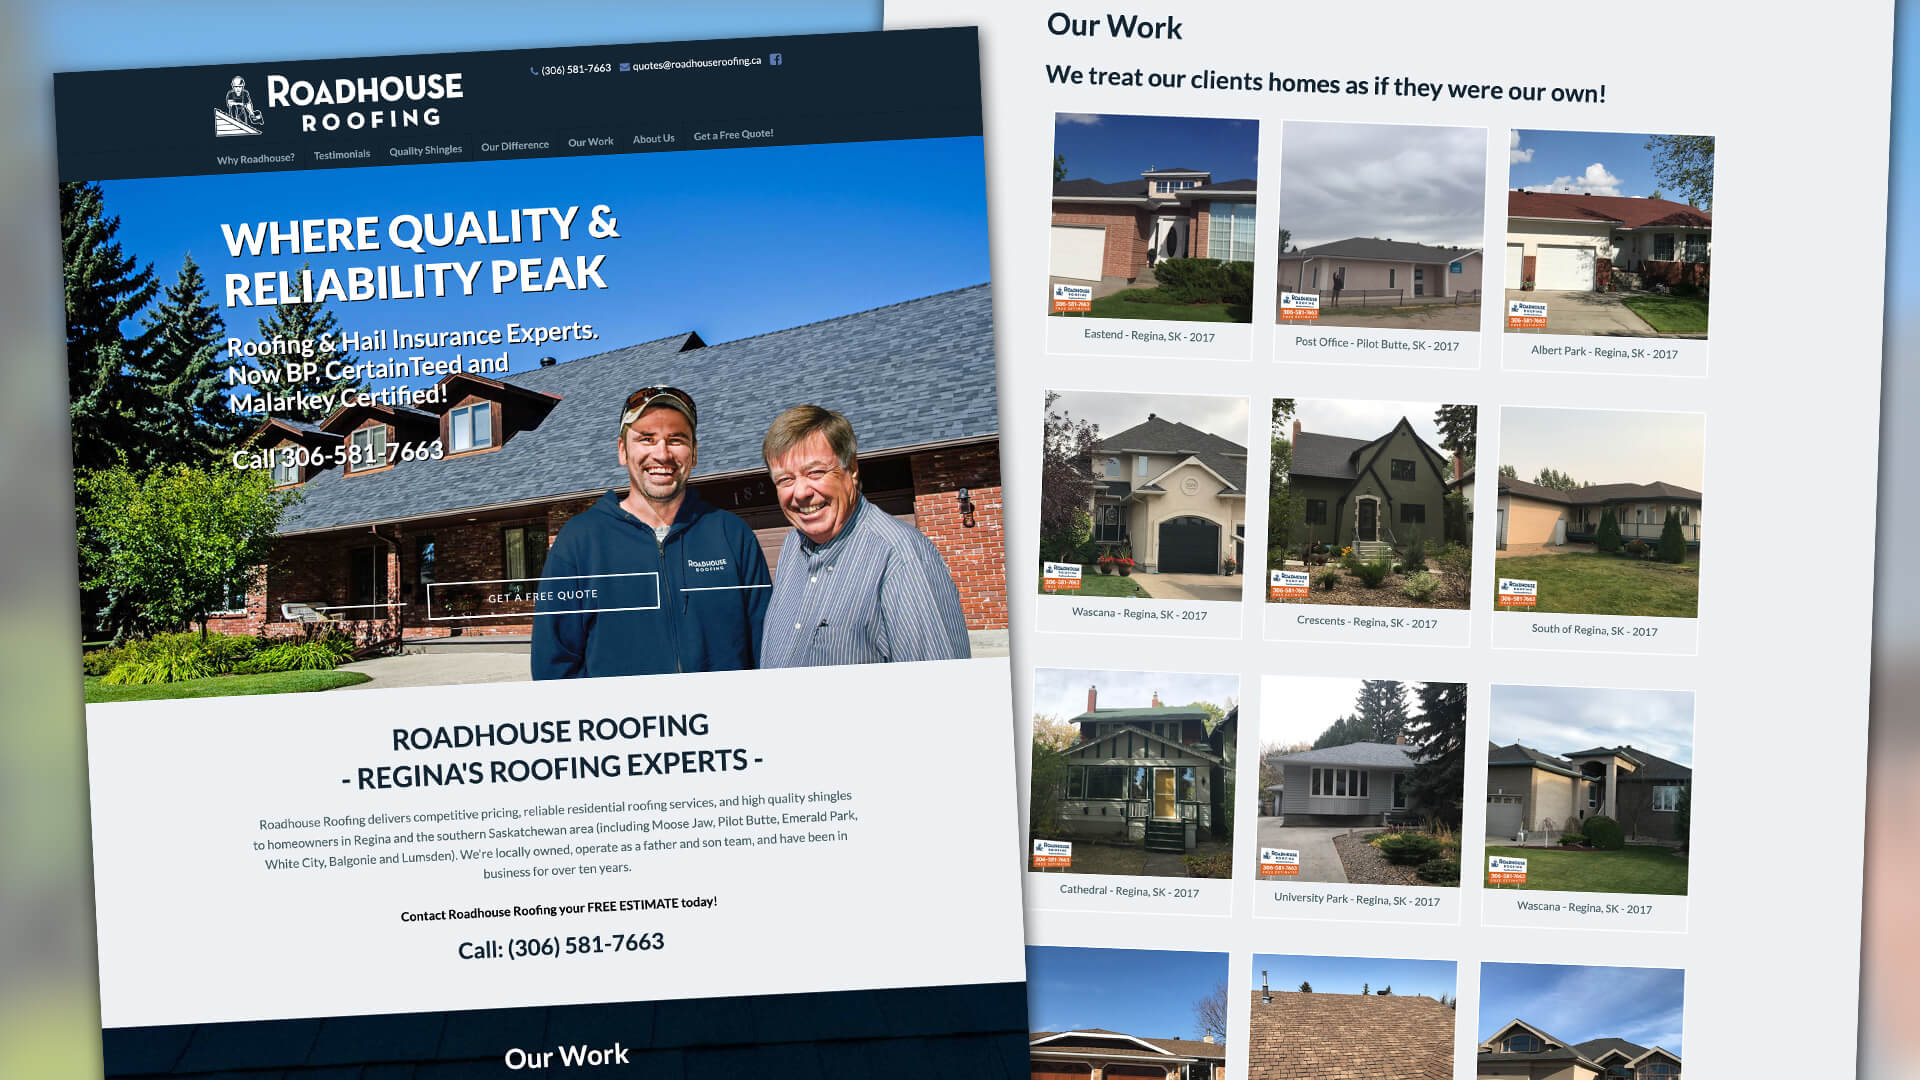 Roadhouse Roofing, Website, Roadhouse Roofing Website, Portfolio Image